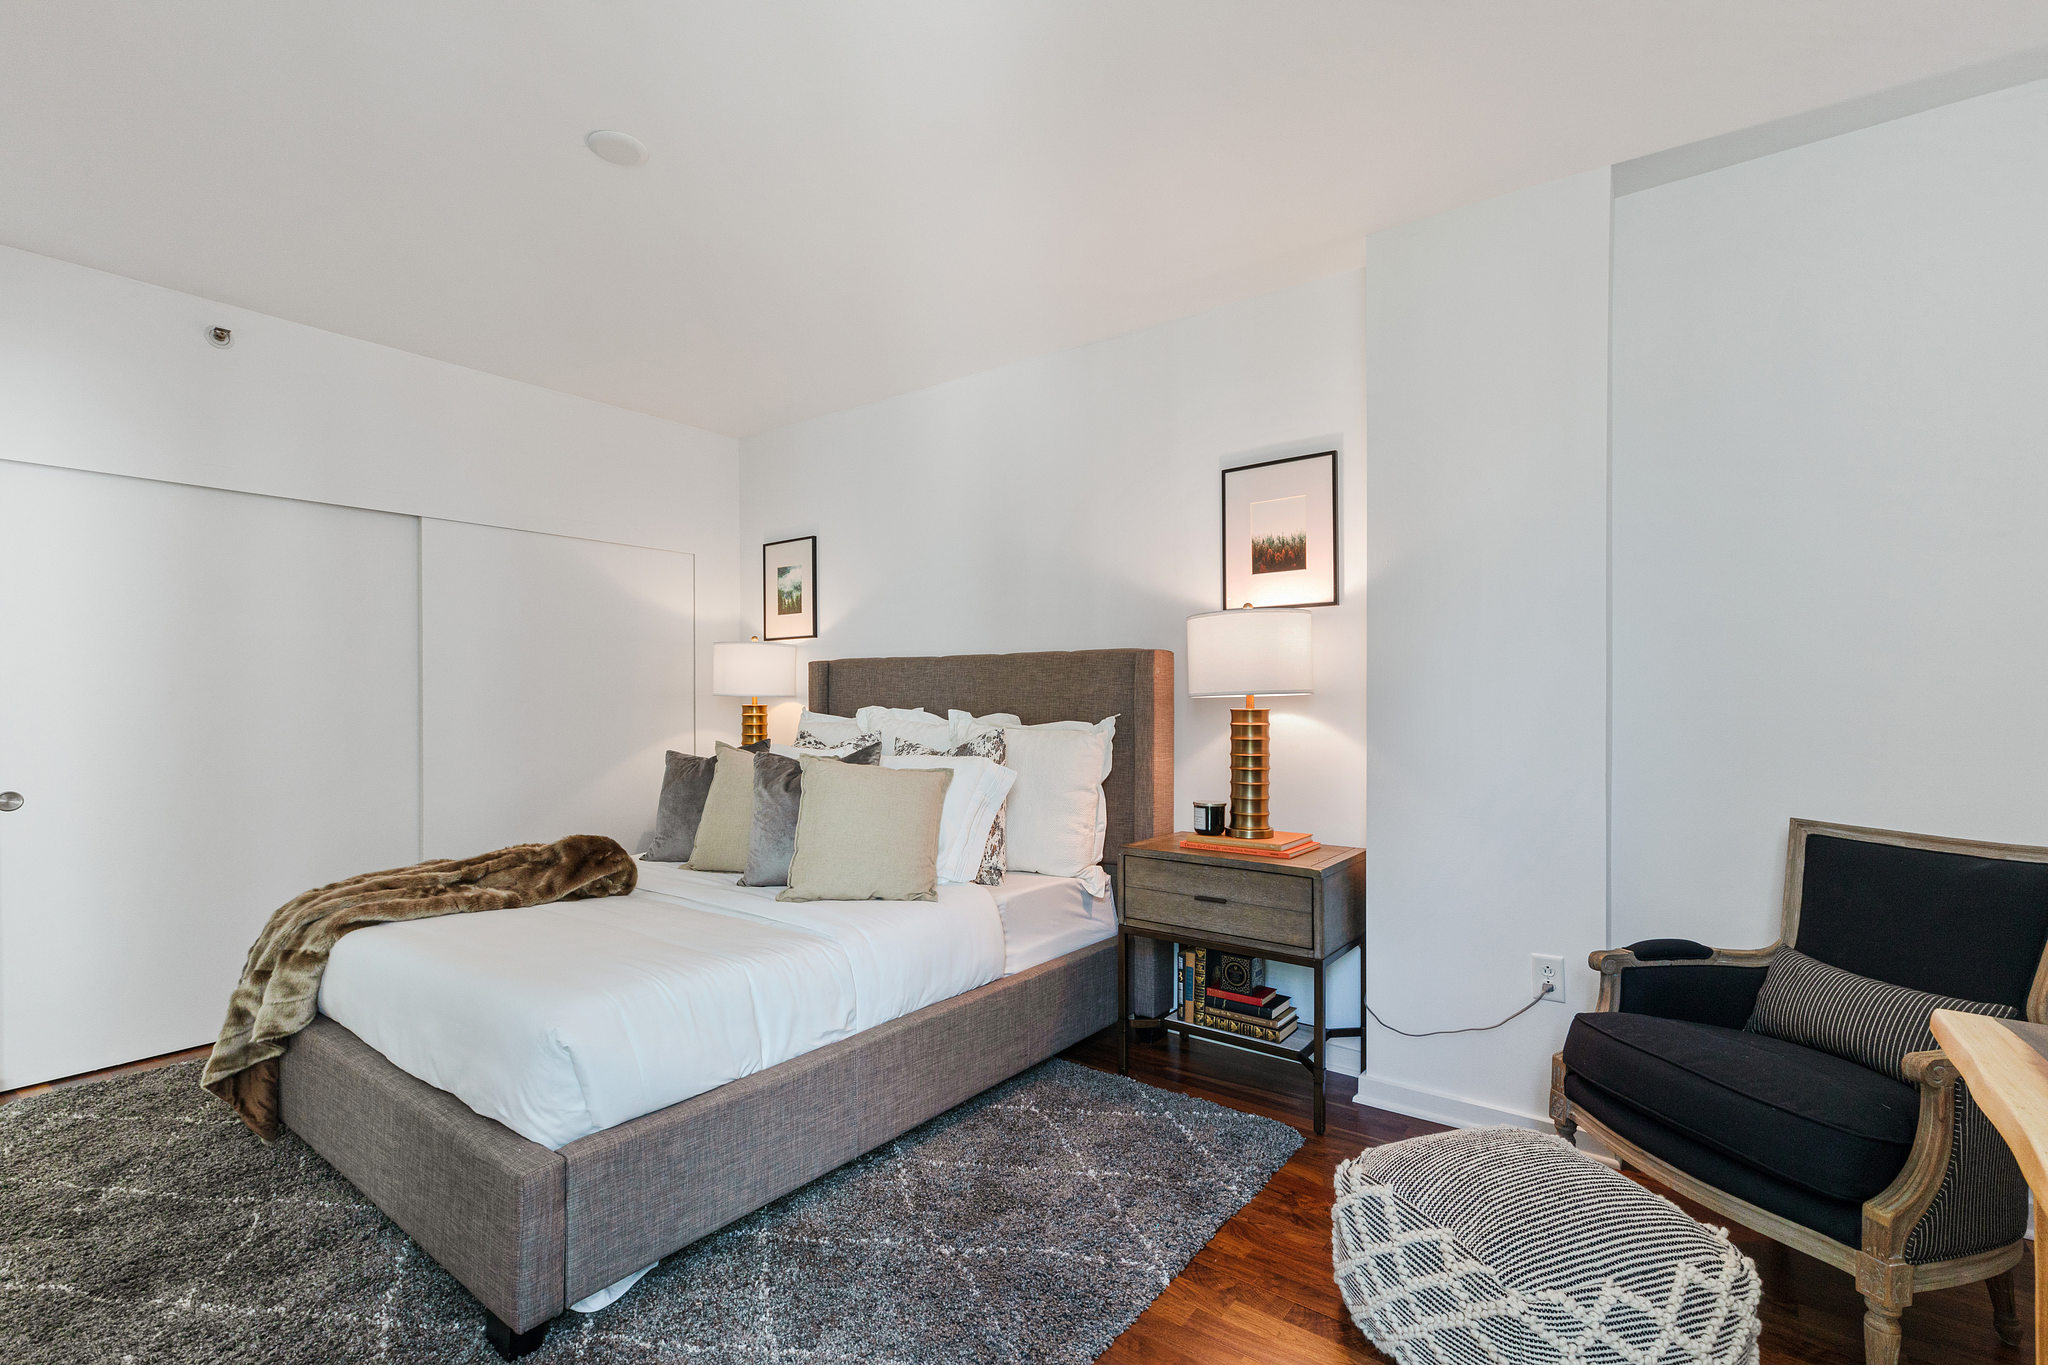 San Francisco Realty - Bedroom with sitting chair